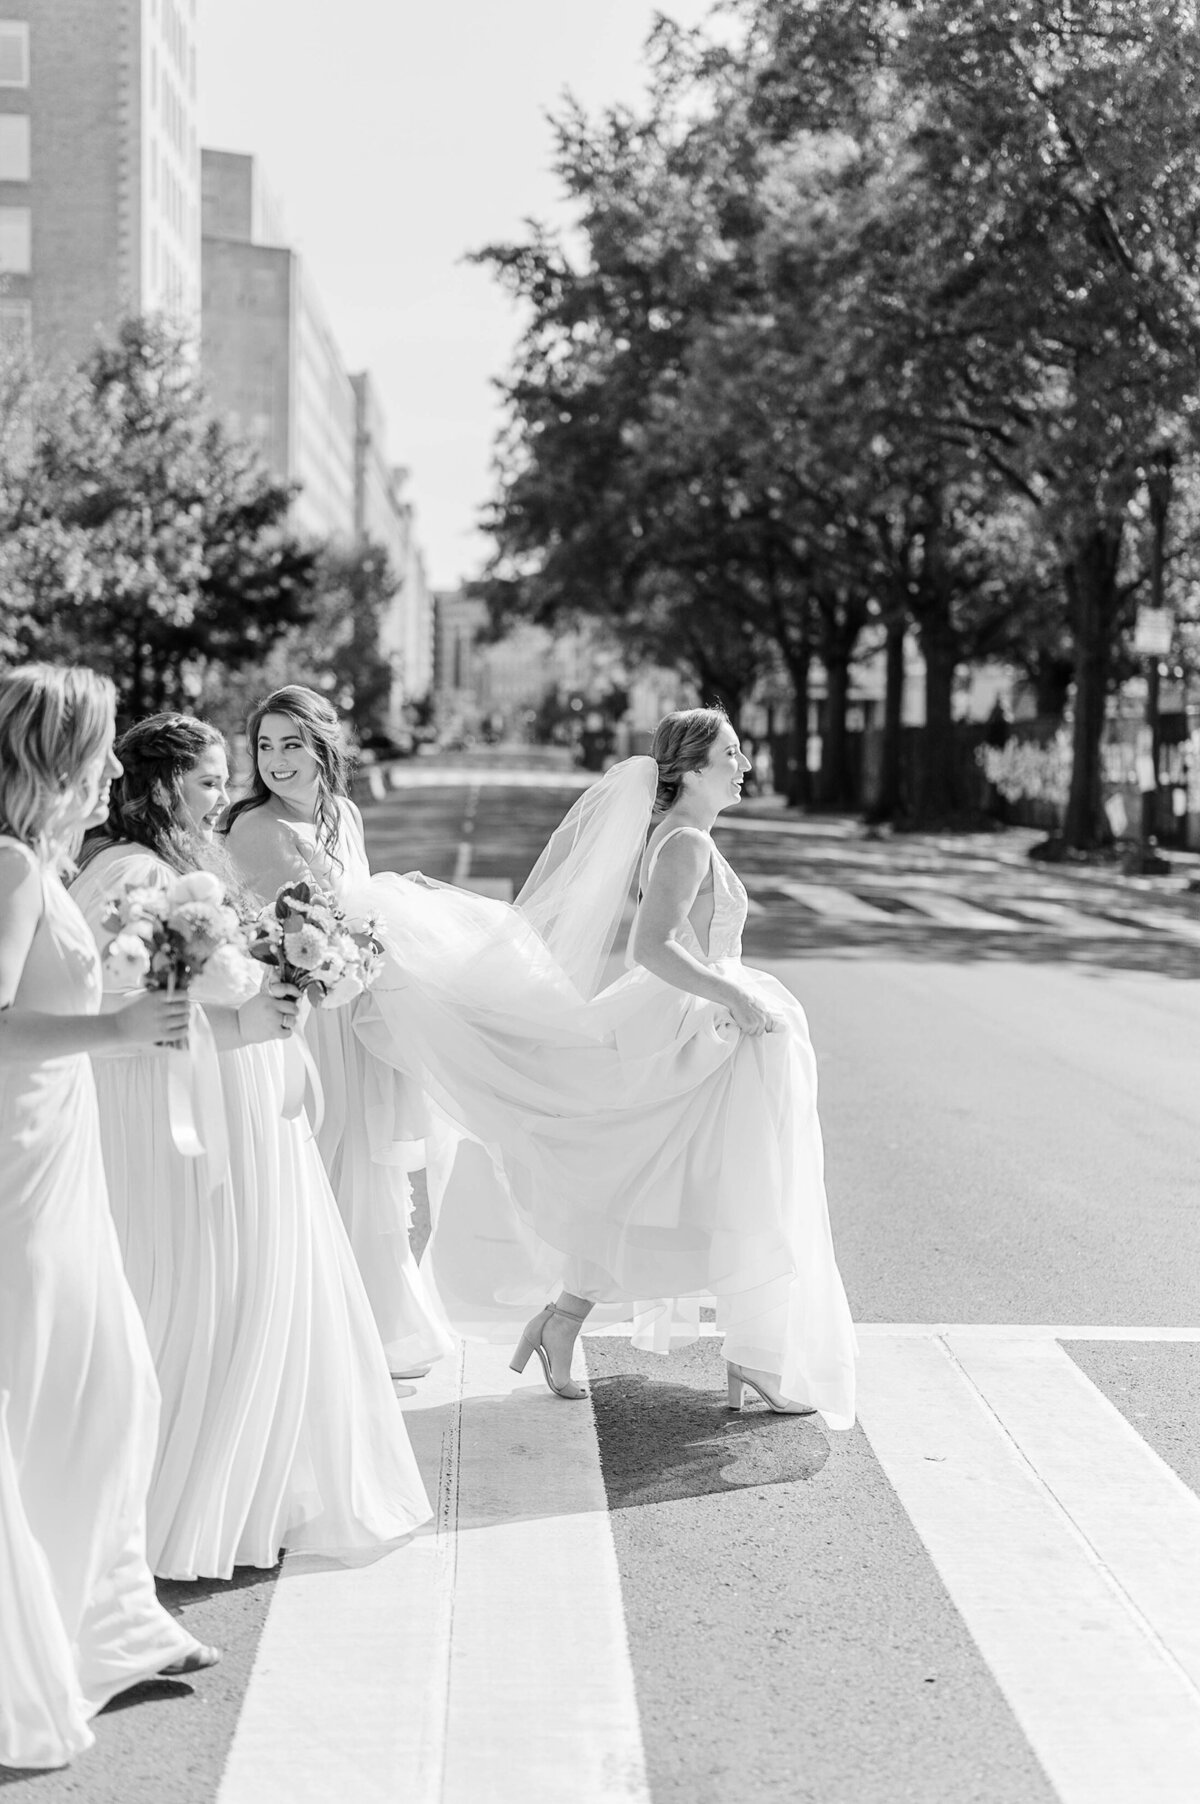 Jennifer Bosak Photography - DC Area Wedding Photography - DC, Virginia, Maryland - Jeanna + Michael - Decatur House Wedding - 4